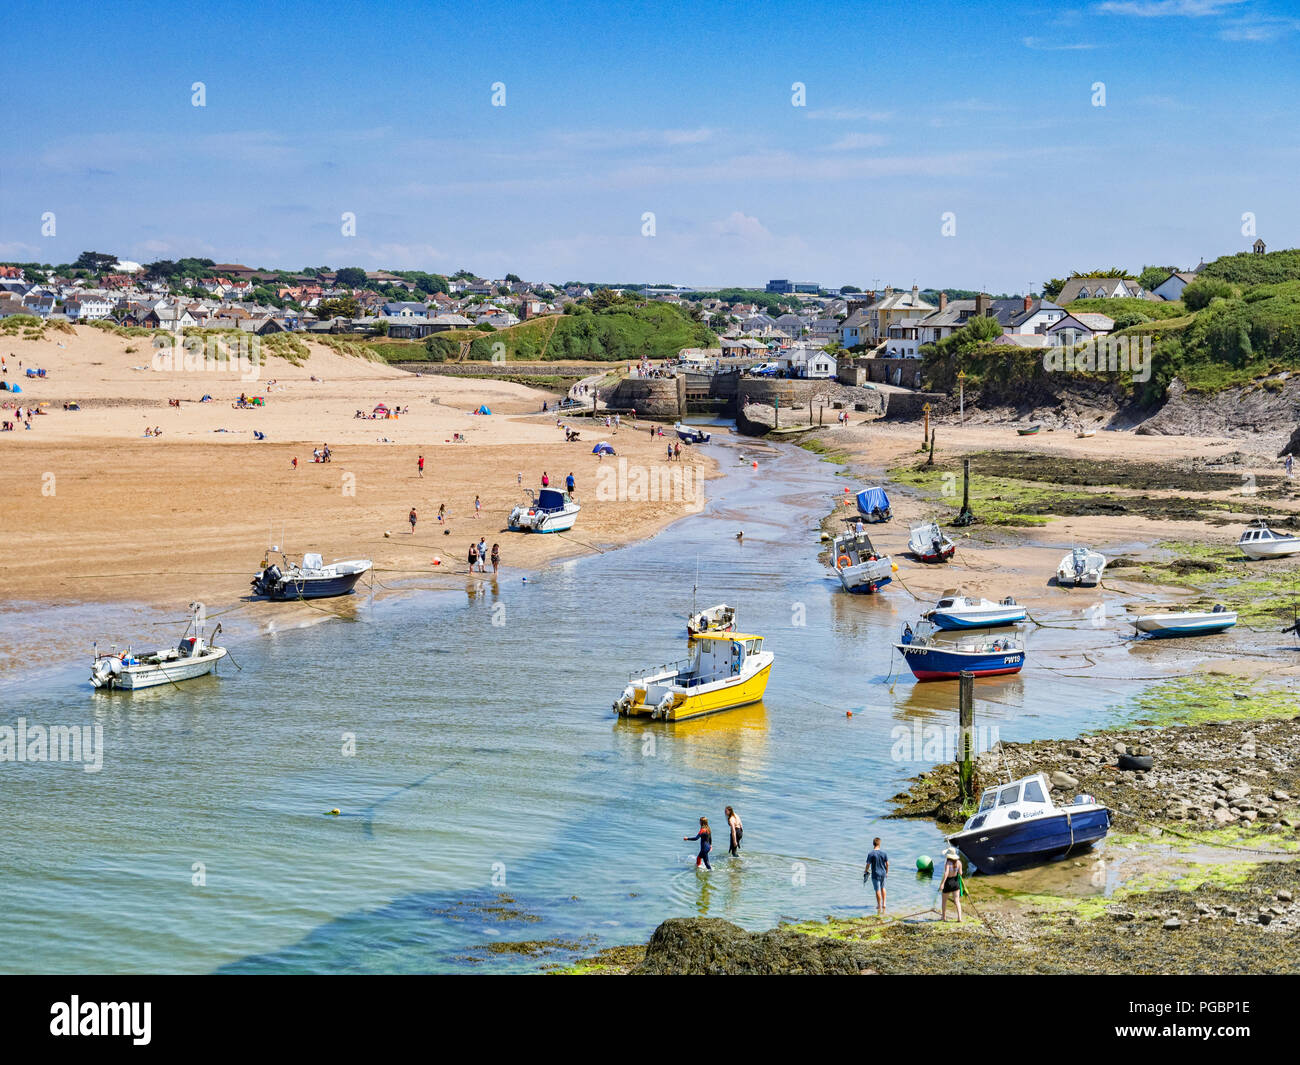 7 July 2018: Bude, Cornwall, UK - The canal at low tide, as holidaymakers enjoy the continuing warm weather. - Stock Image